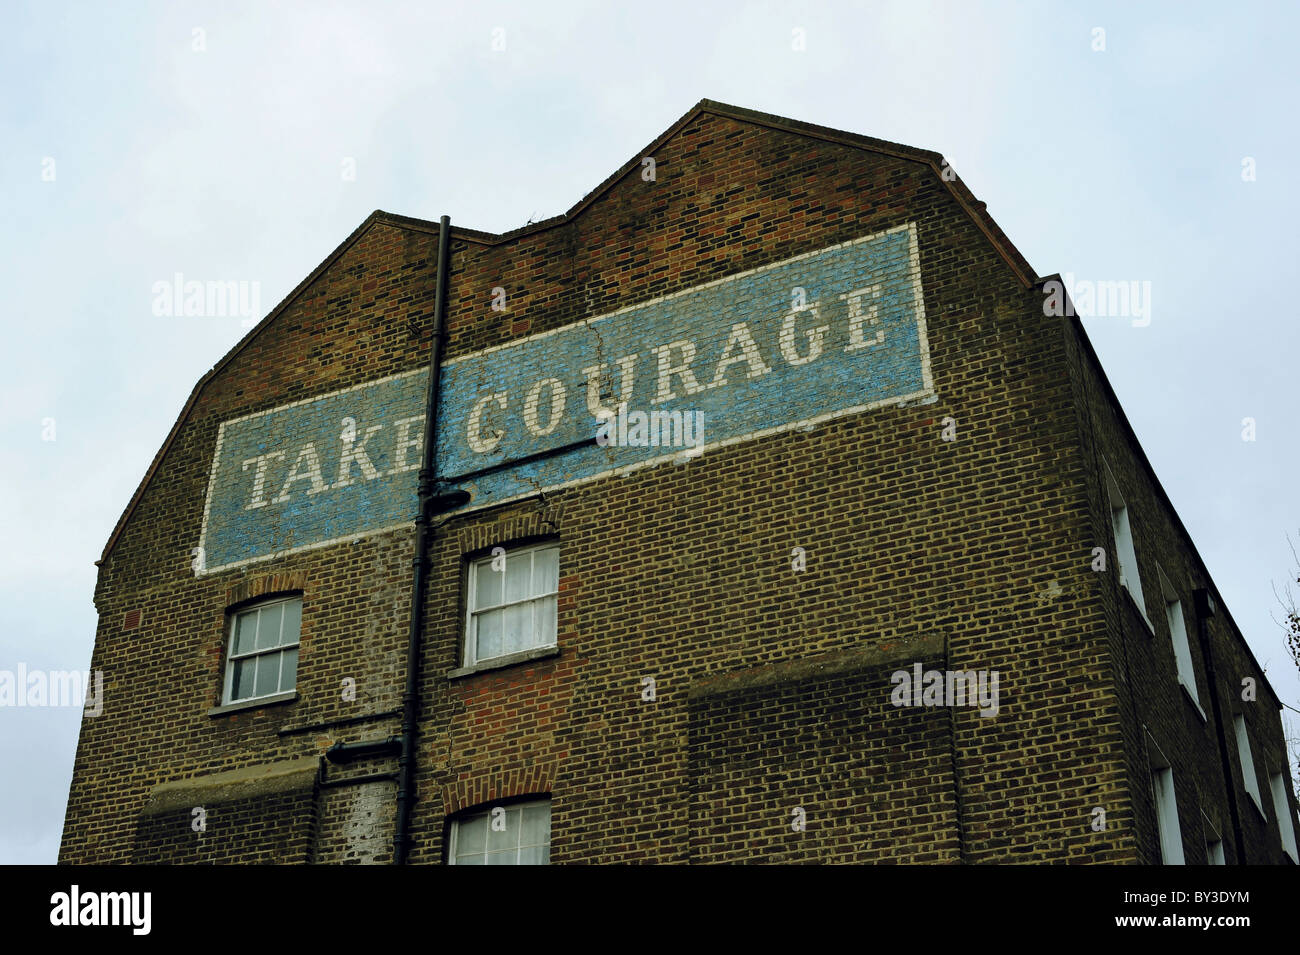 Take Courage Advert on What used to be The Courage & Co. Ltd Brewery - Stock Image